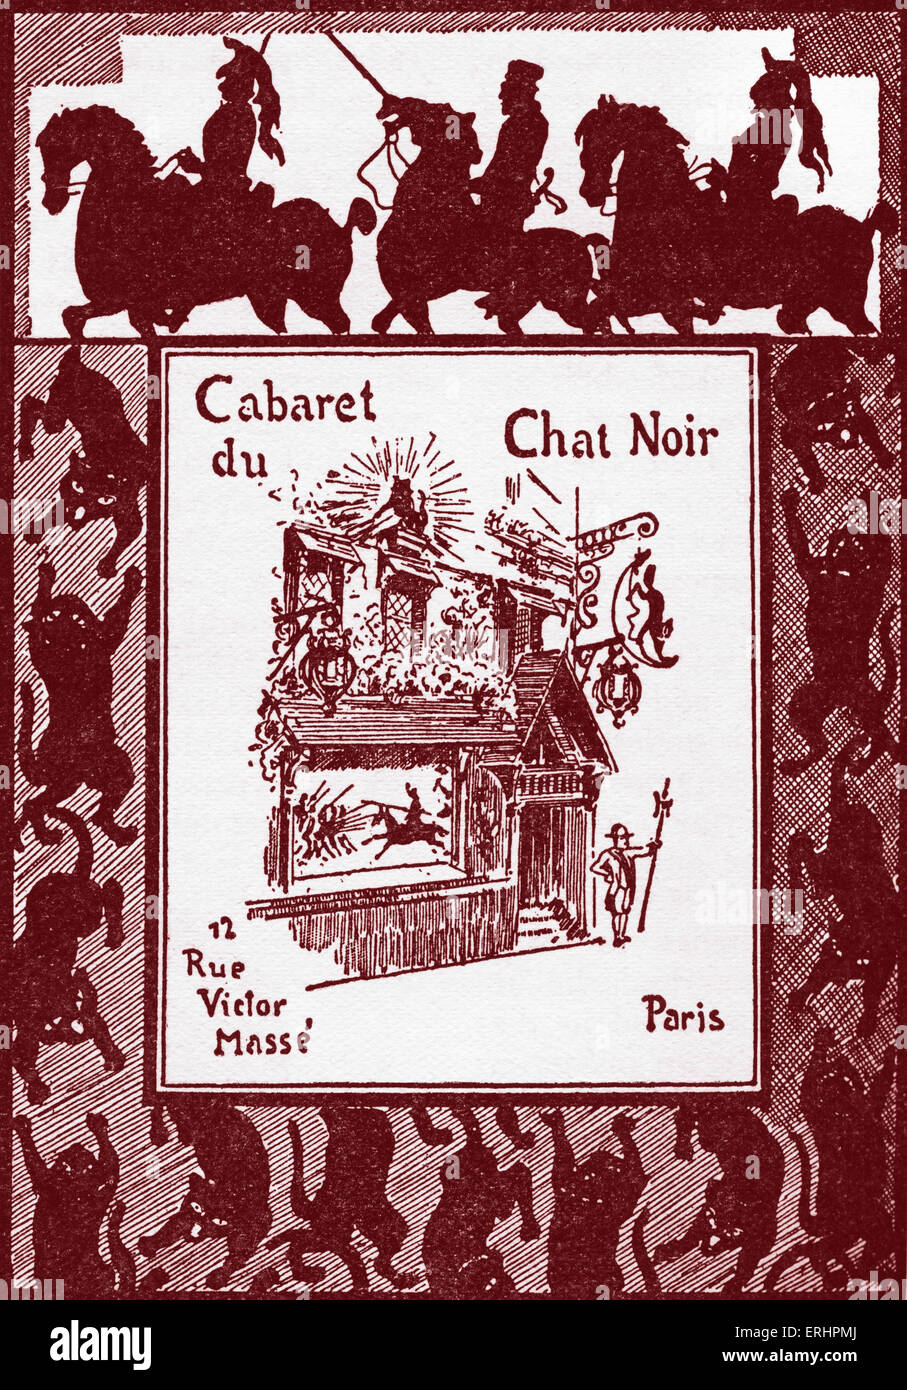 Le Chat Noir - Poster in French advertising a puppet show at the cabaret,  probably designed by Caran d'Ache: - Stock Image